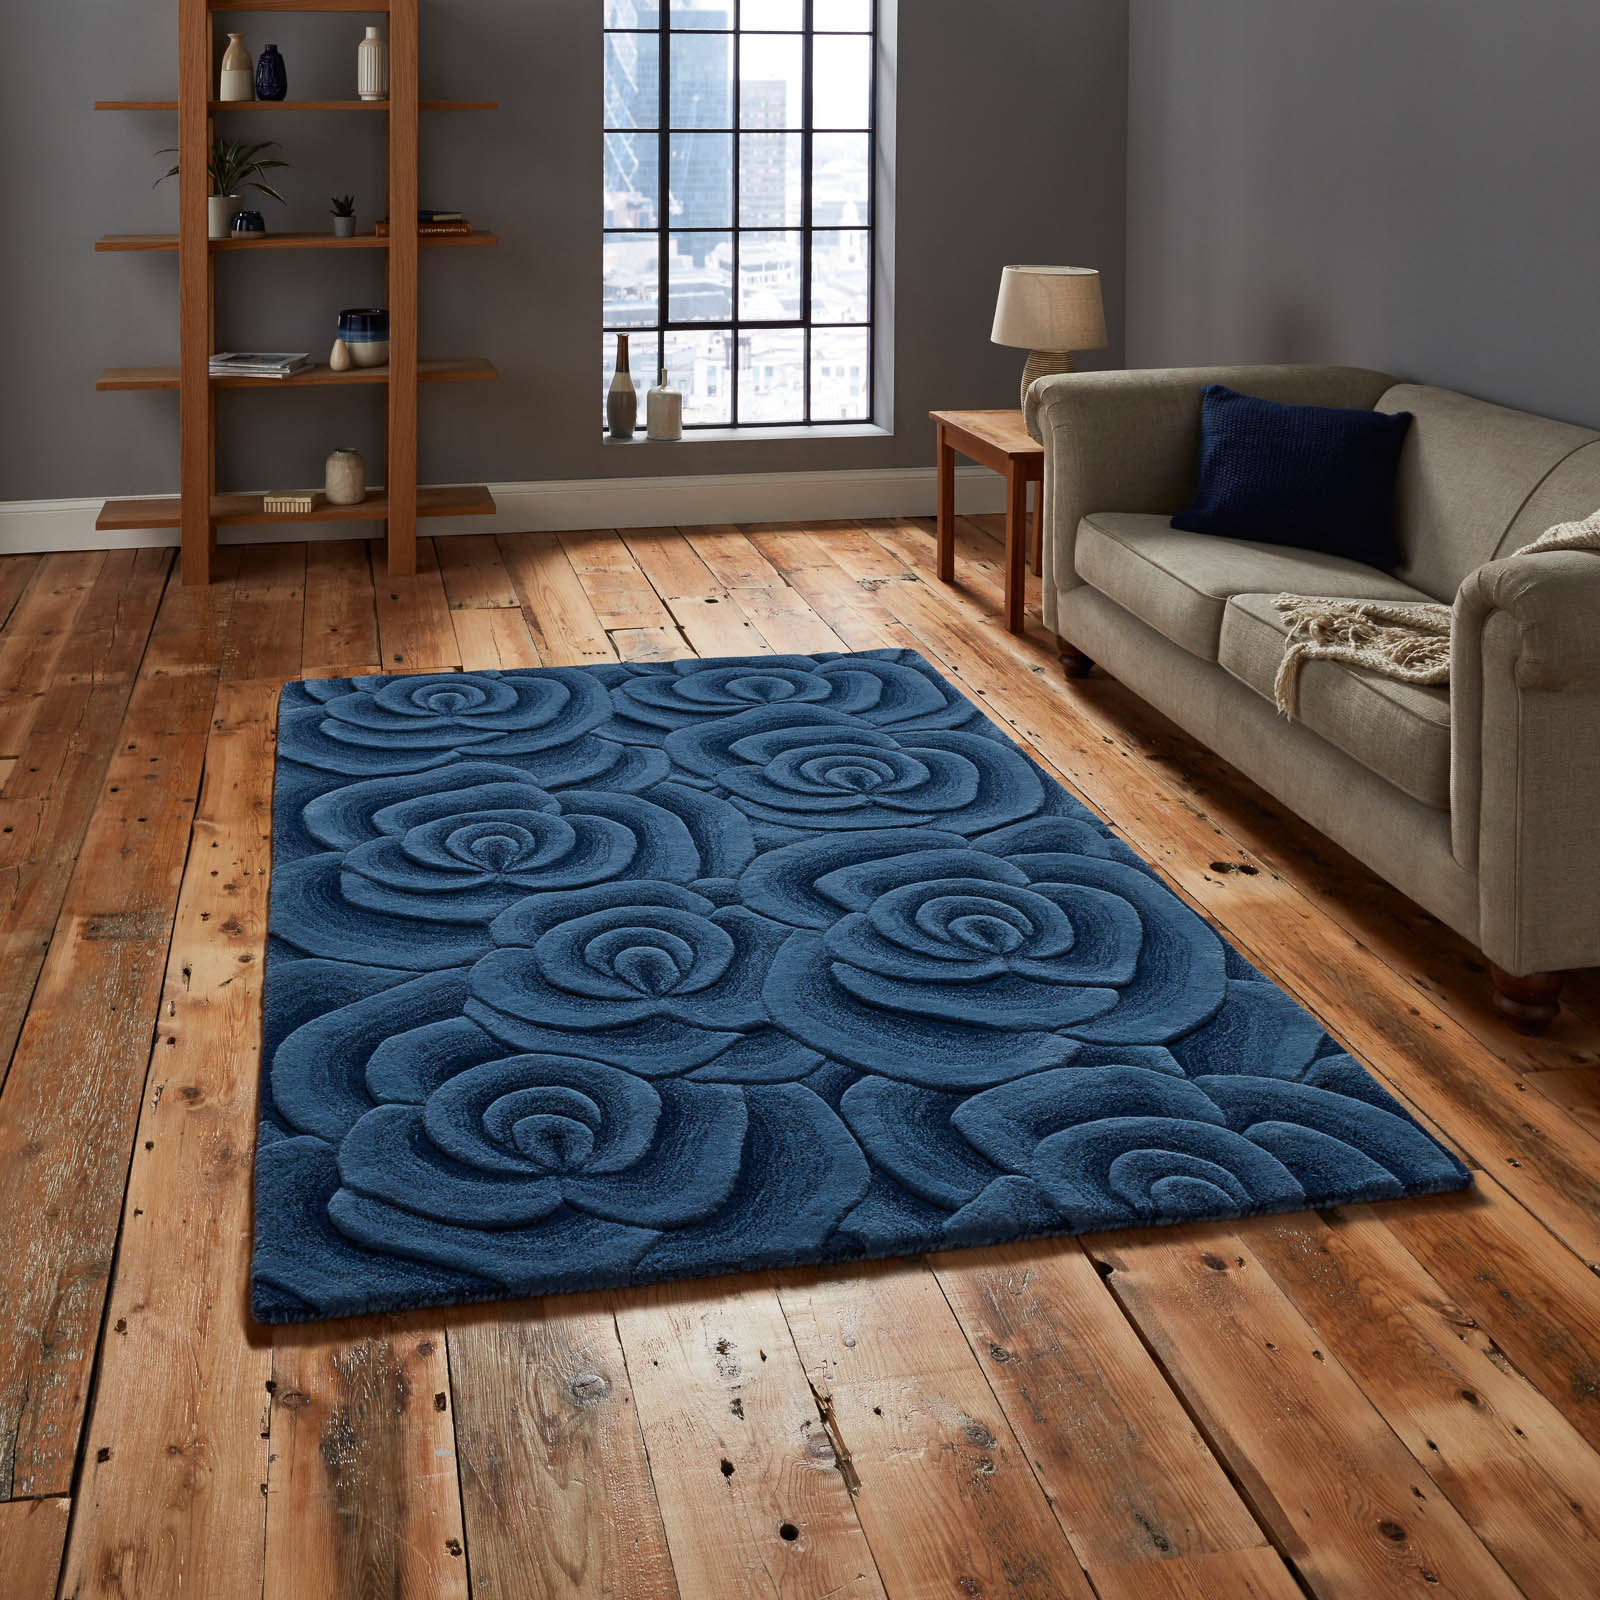 Mother's Day gift, Valentine Rugs VL10 Hand Made Indian Wool in Blue